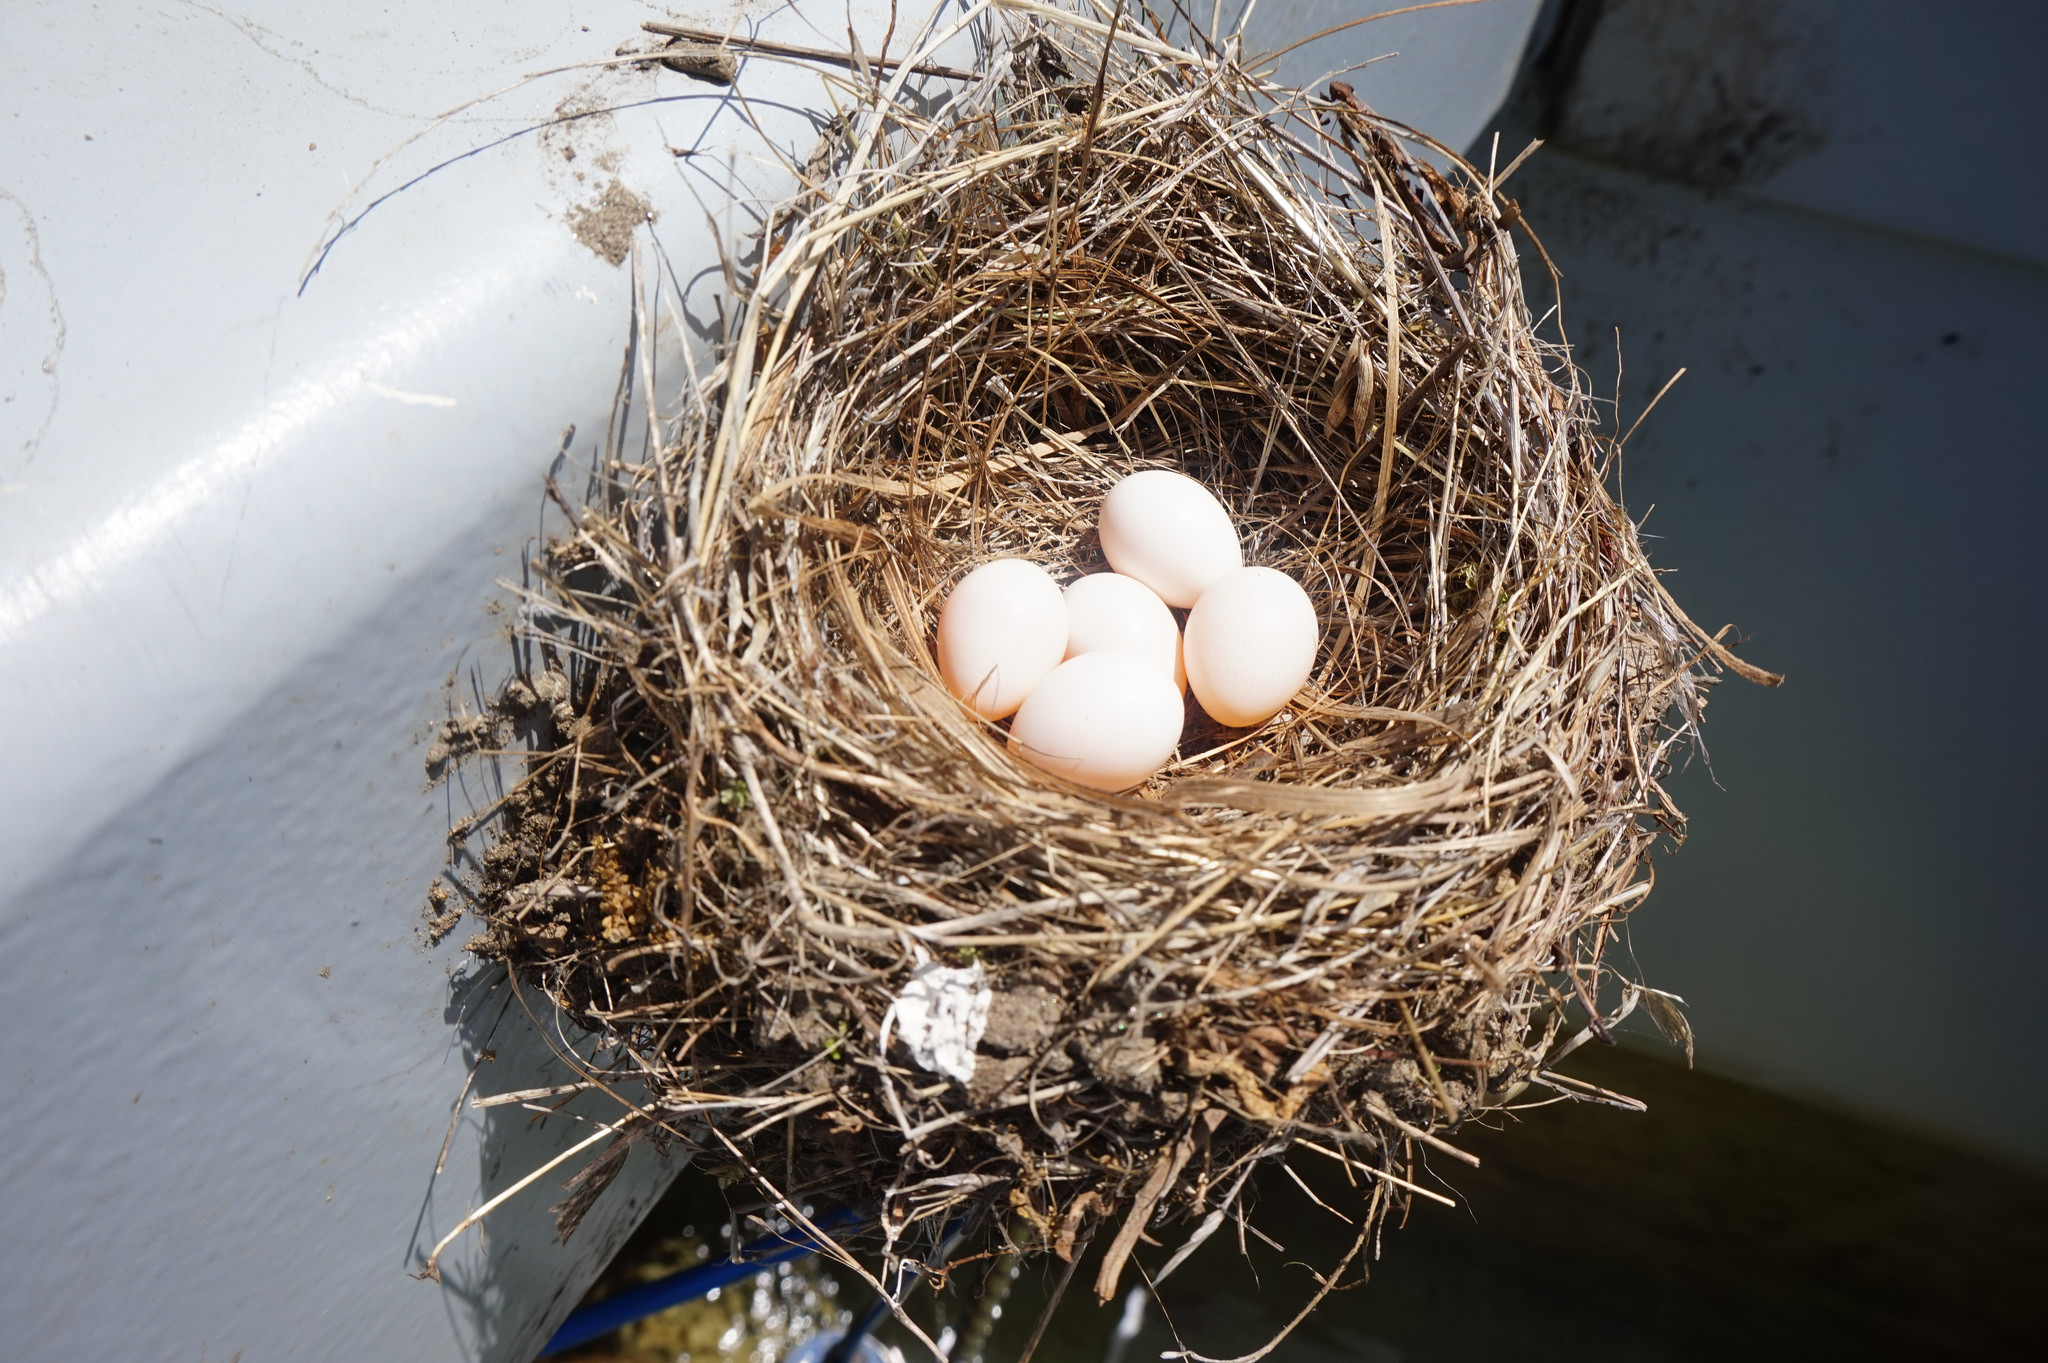 Black Phoebe Nest with eggs